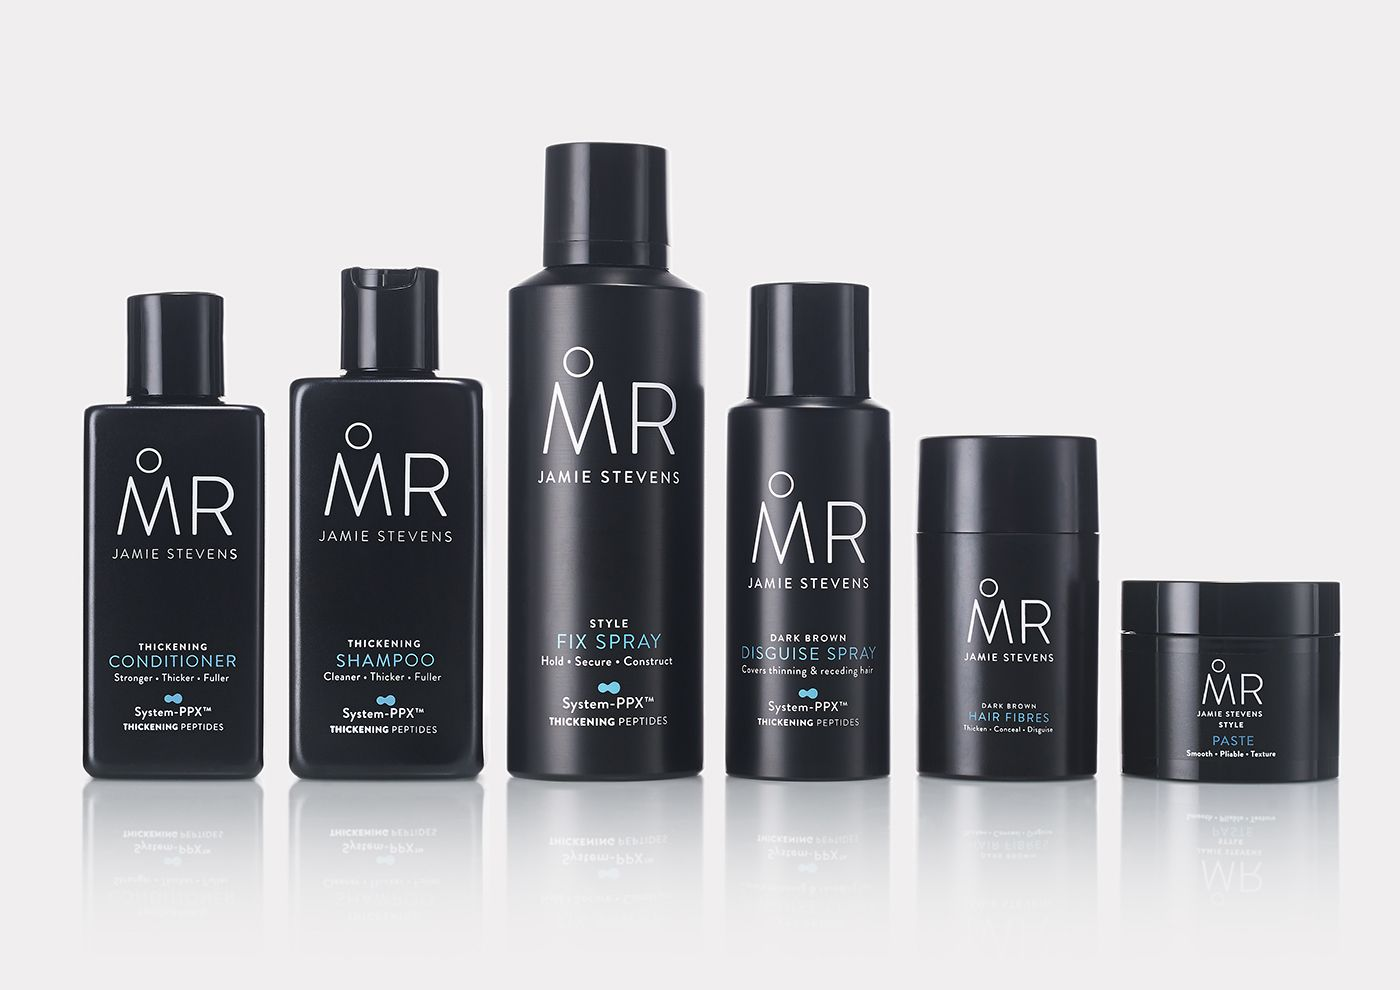 MR_LineUp | Cheap skin care products, Cosmetics ...